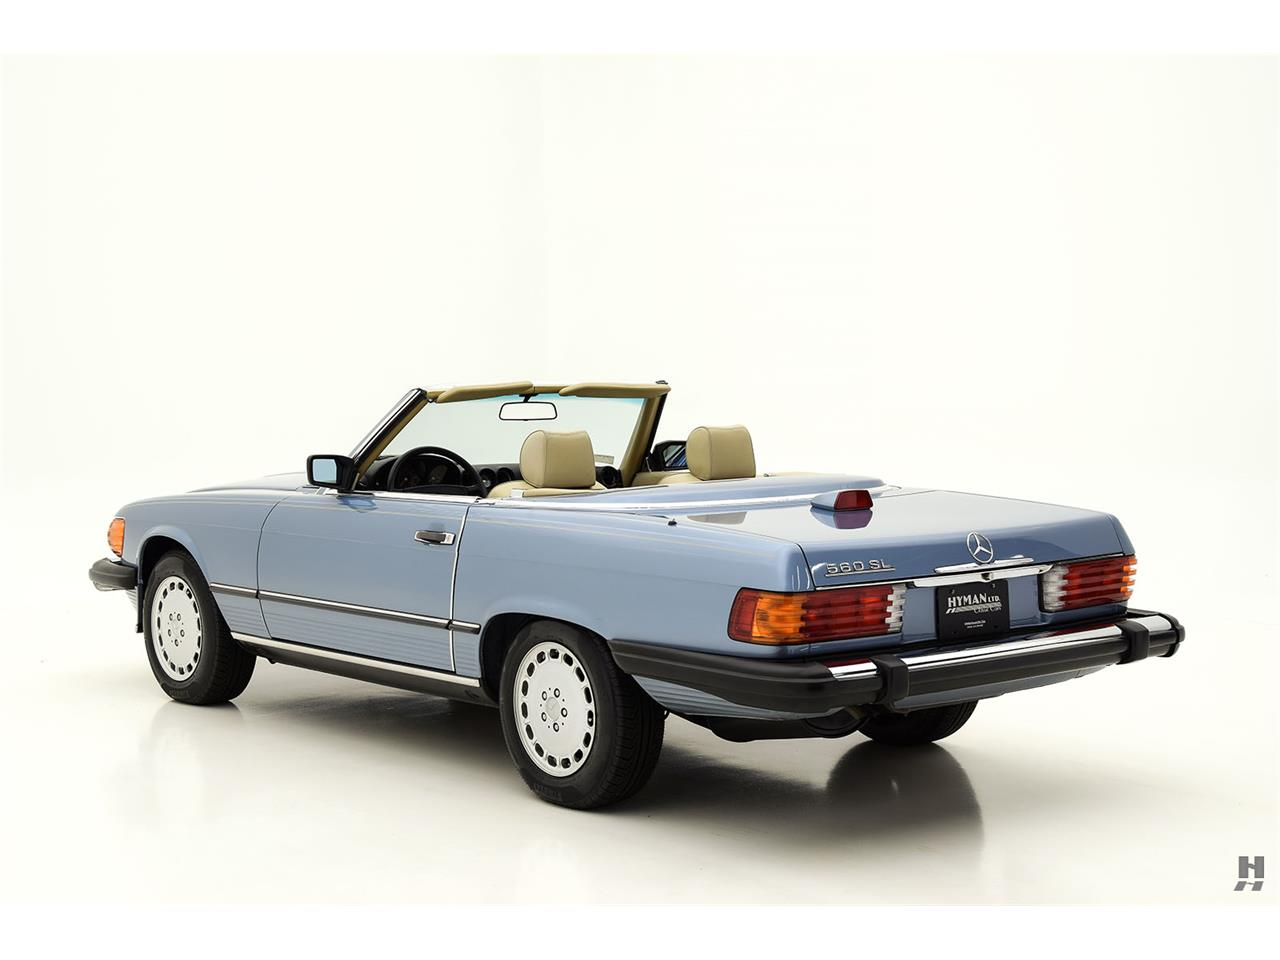 Large Picture of '87 Mercedes-Benz 560SL located in Saint Louis Missouri - $48,500.00 Offered by Hyman Ltd. Classic Cars - LENL